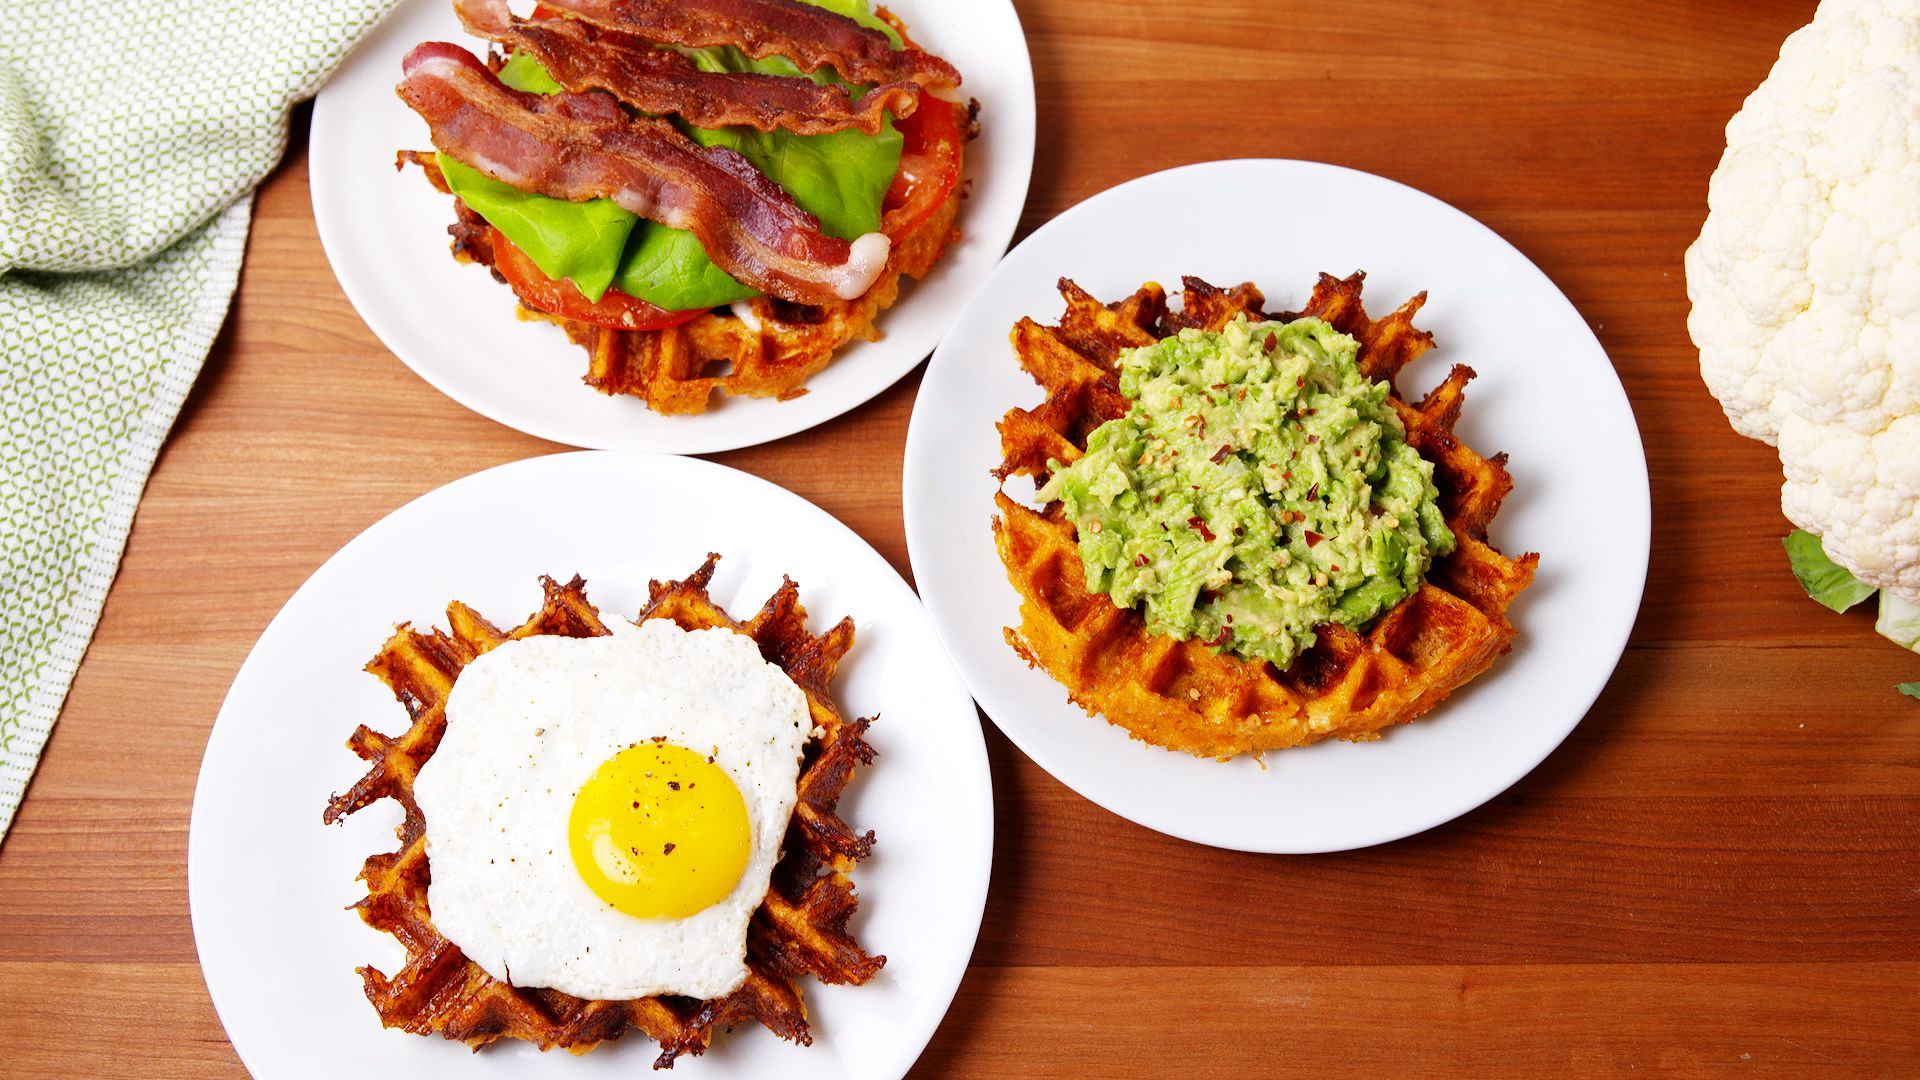 Cauliflower Waffles Are Our New Low Carb Obsession